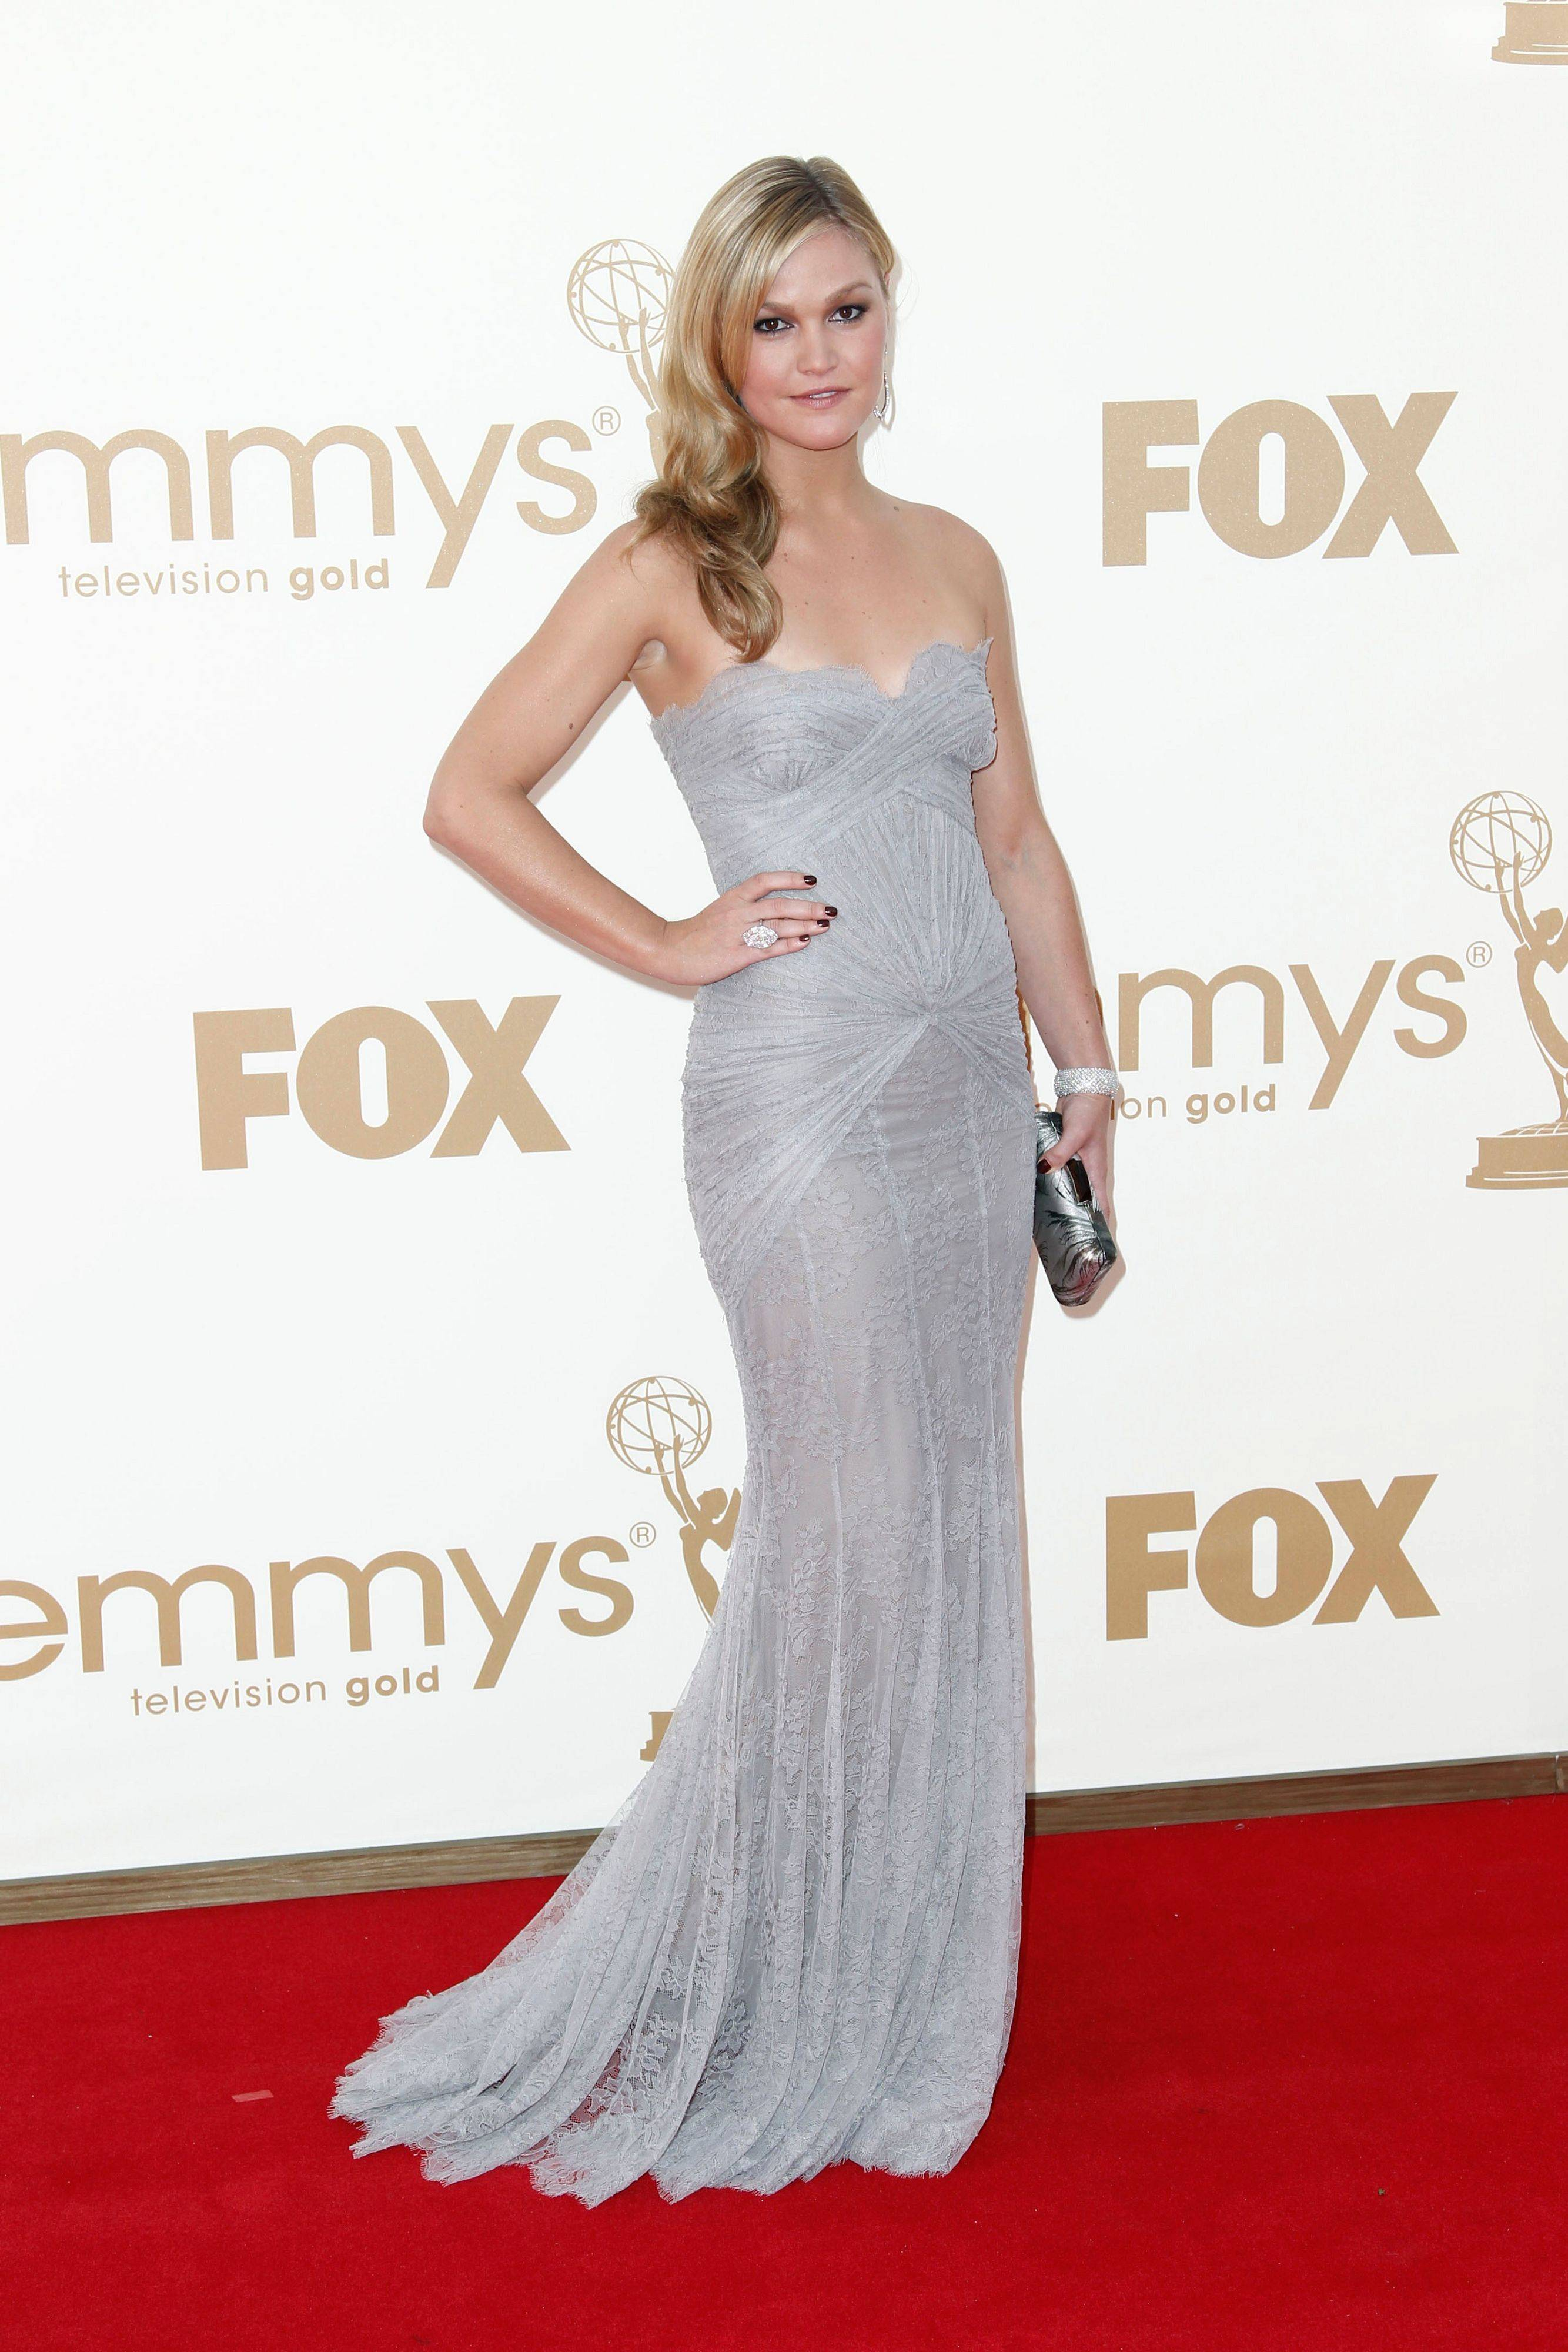 Film and TV star Julia Stiles goest for a subtle, yet glamourous style in her Emmy gown.